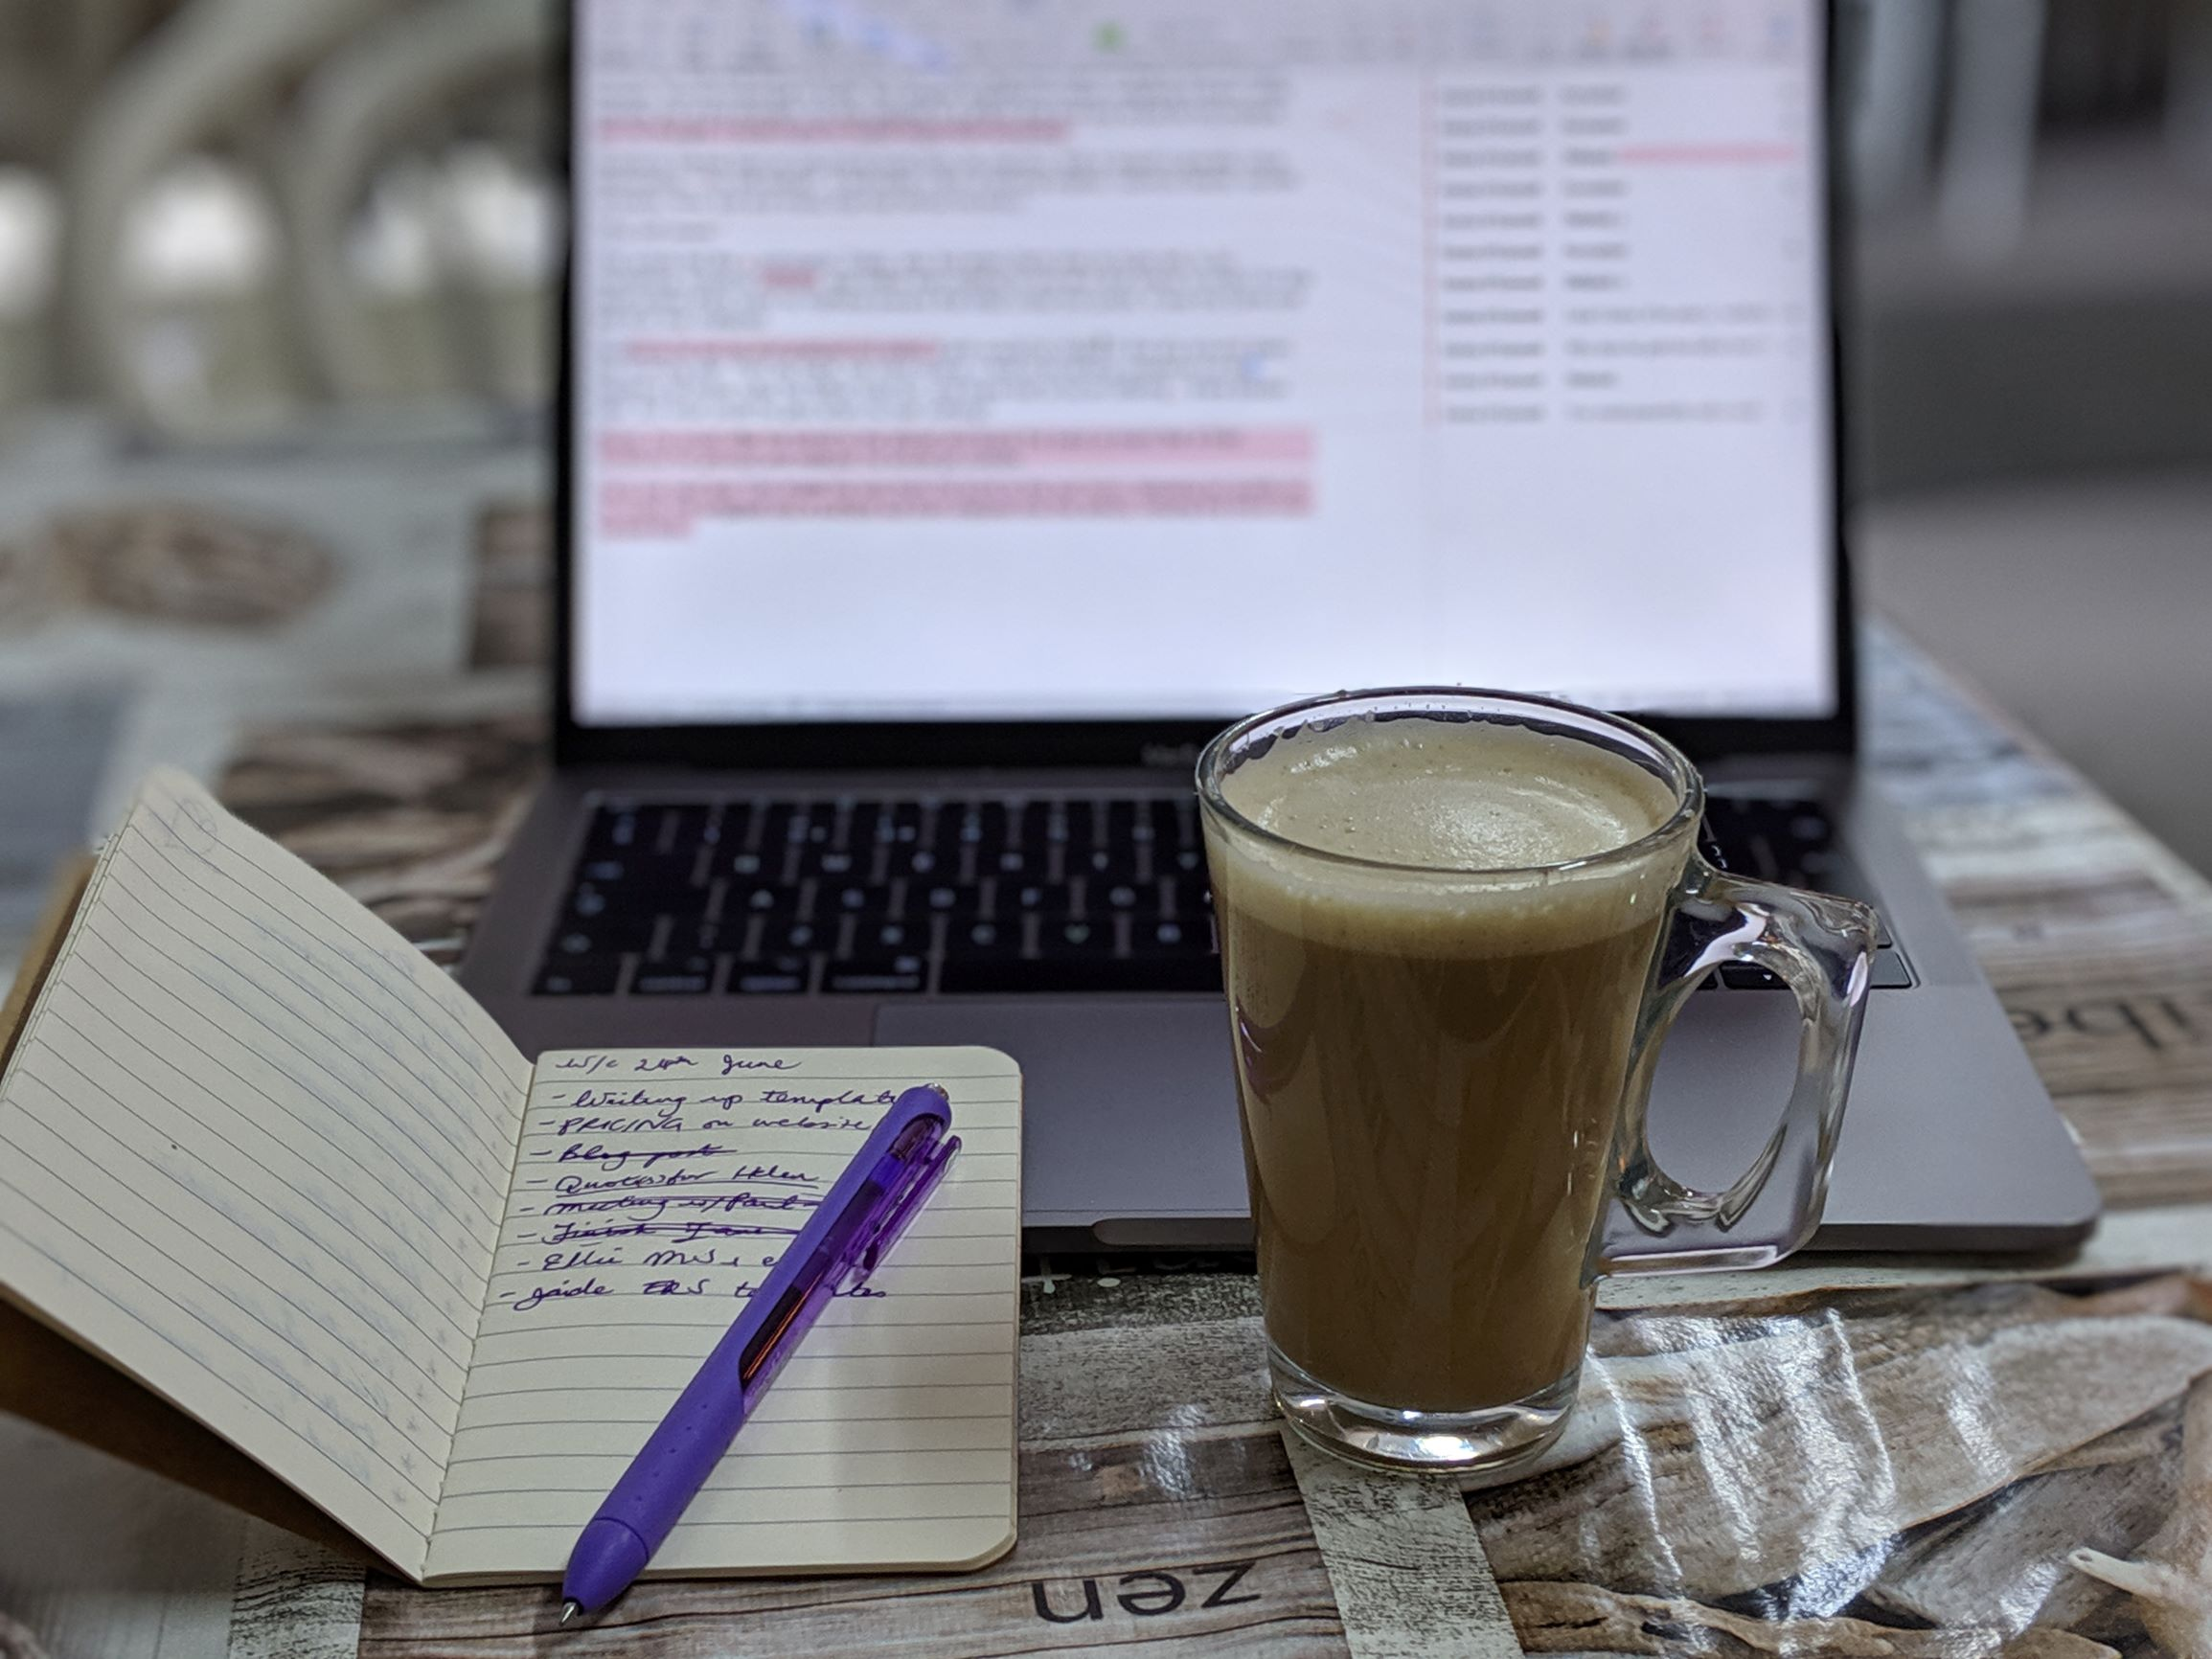 A laptop, a coffee, and an open notebook